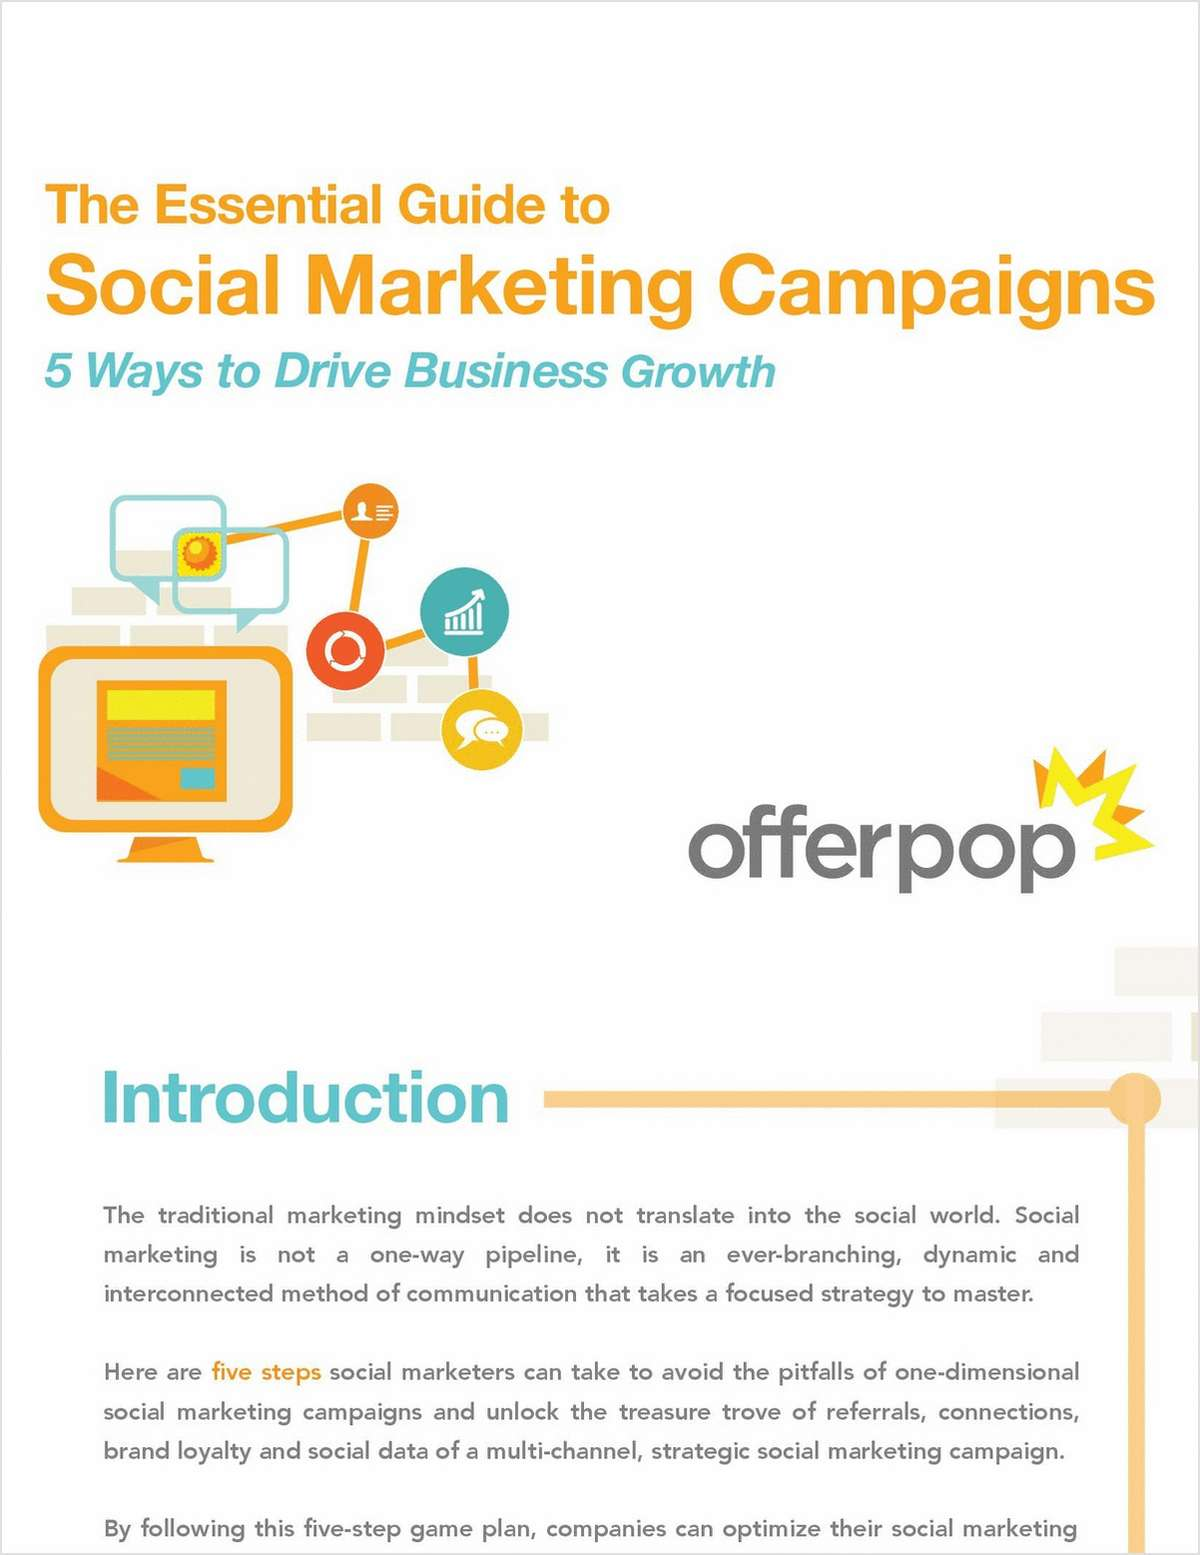 The Essential Guide to Social Marketing Campaigns